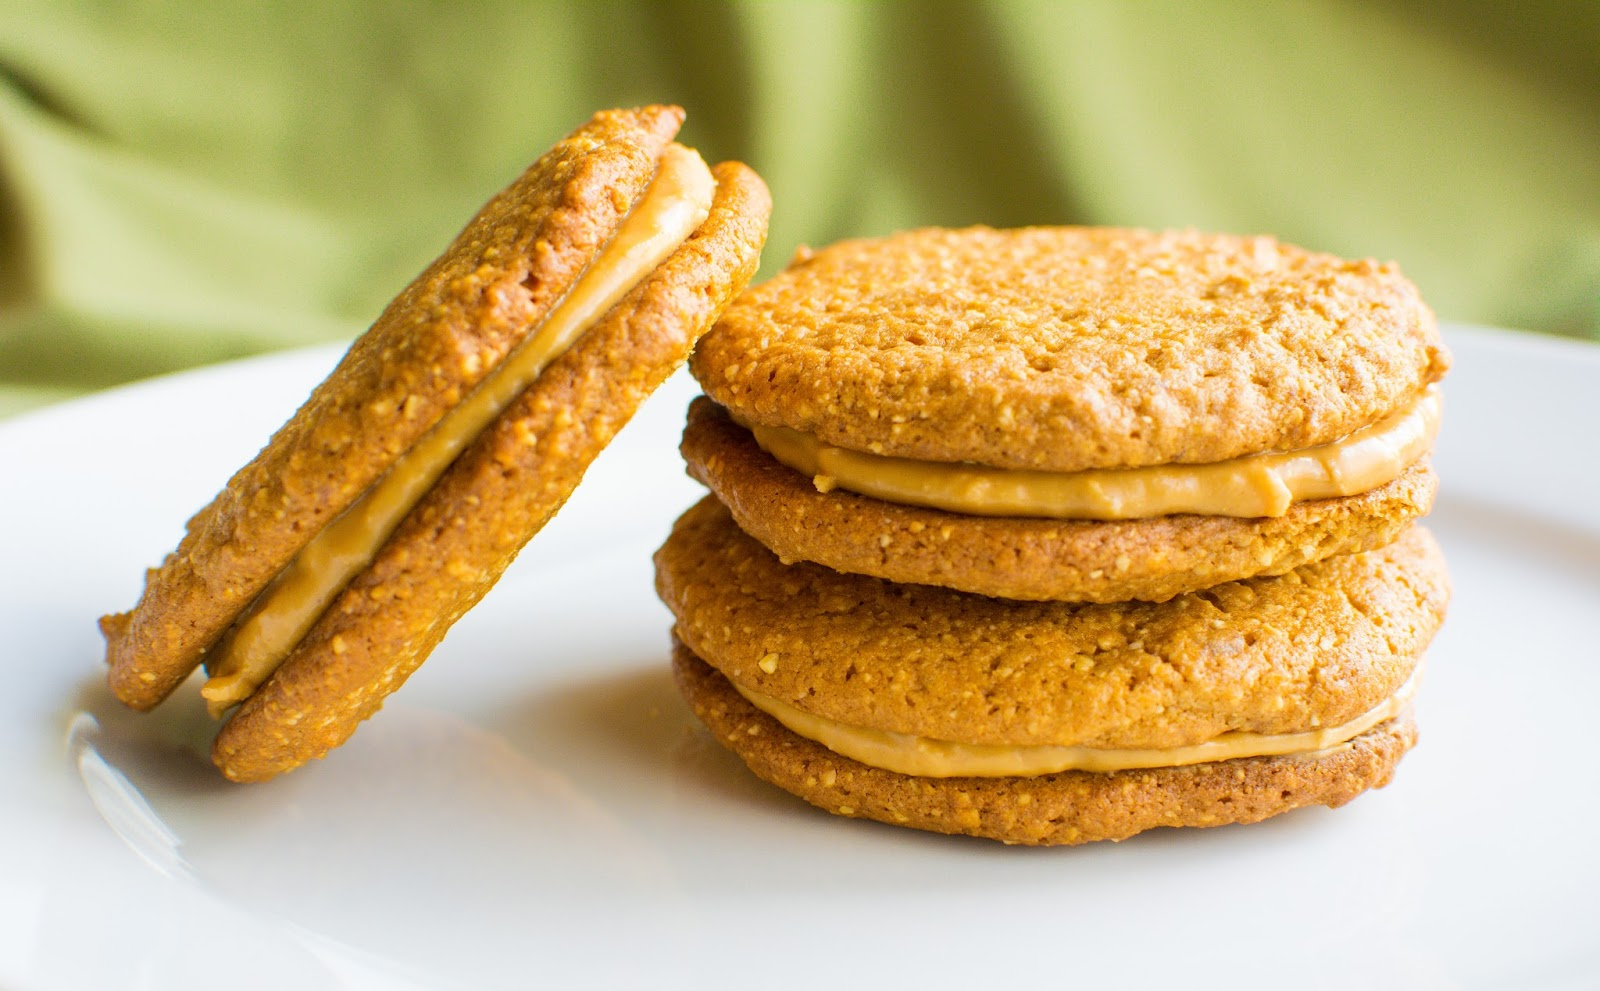 All Food Considered: Peanut Butter Sandwich Cookies